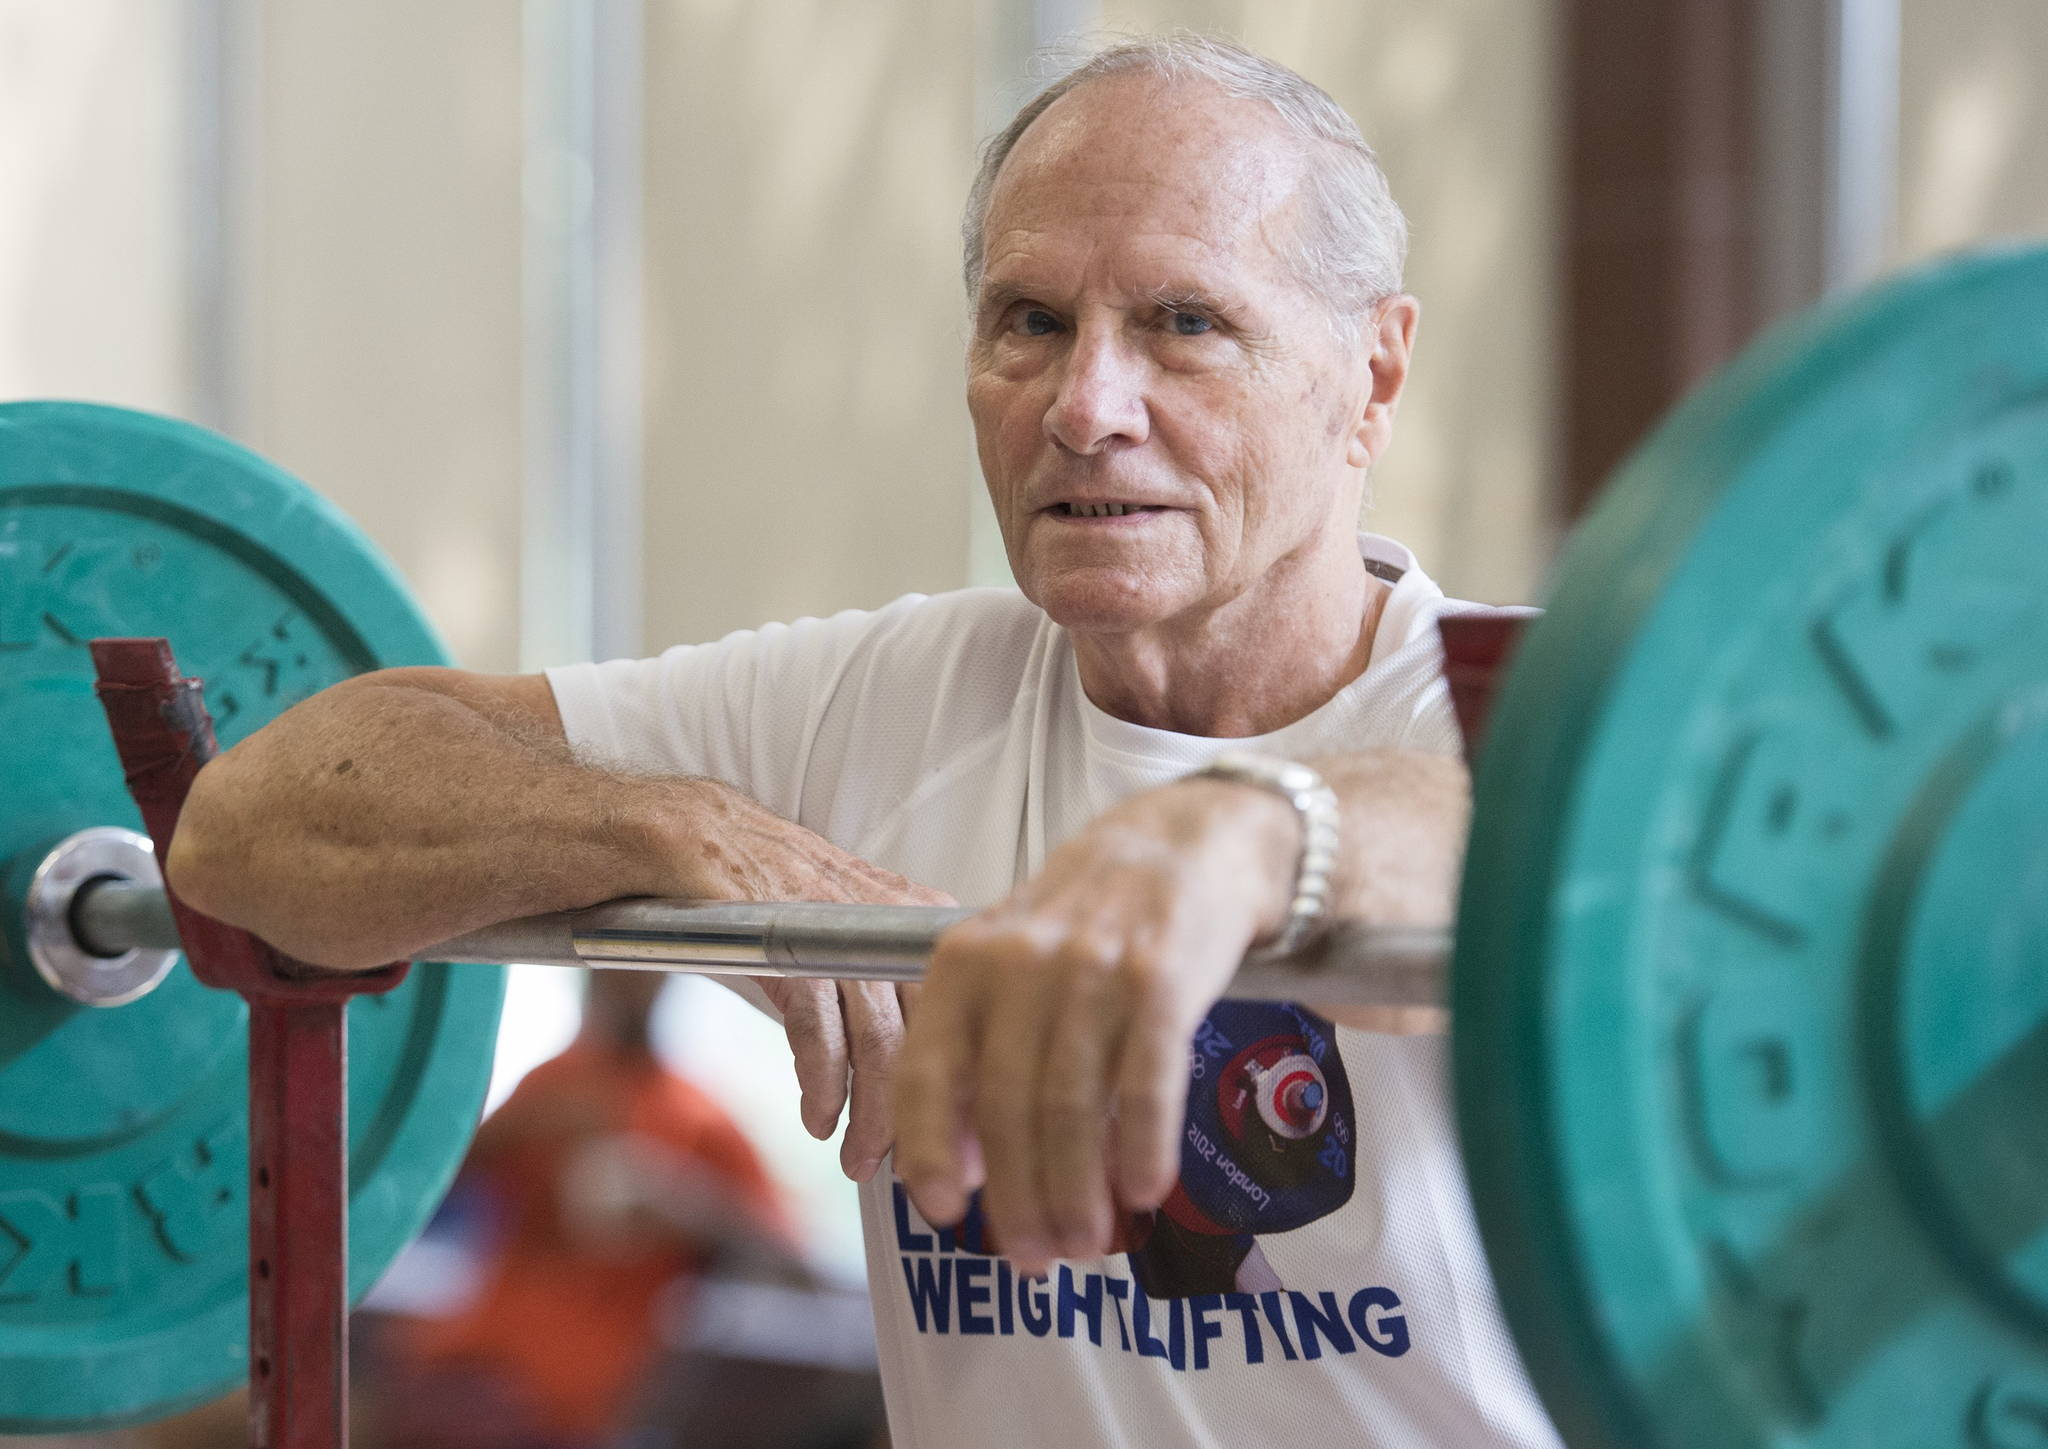 Marcel Perron poses in the training room during the 2019 World Masters Weightlifting Championship in Montreal, Saturday, Aug. 17, 2019. Perron competed on Friday and won in the 73-kilogram, 80-and-above class. THE CANADIAN PRESS/Graham Hughes